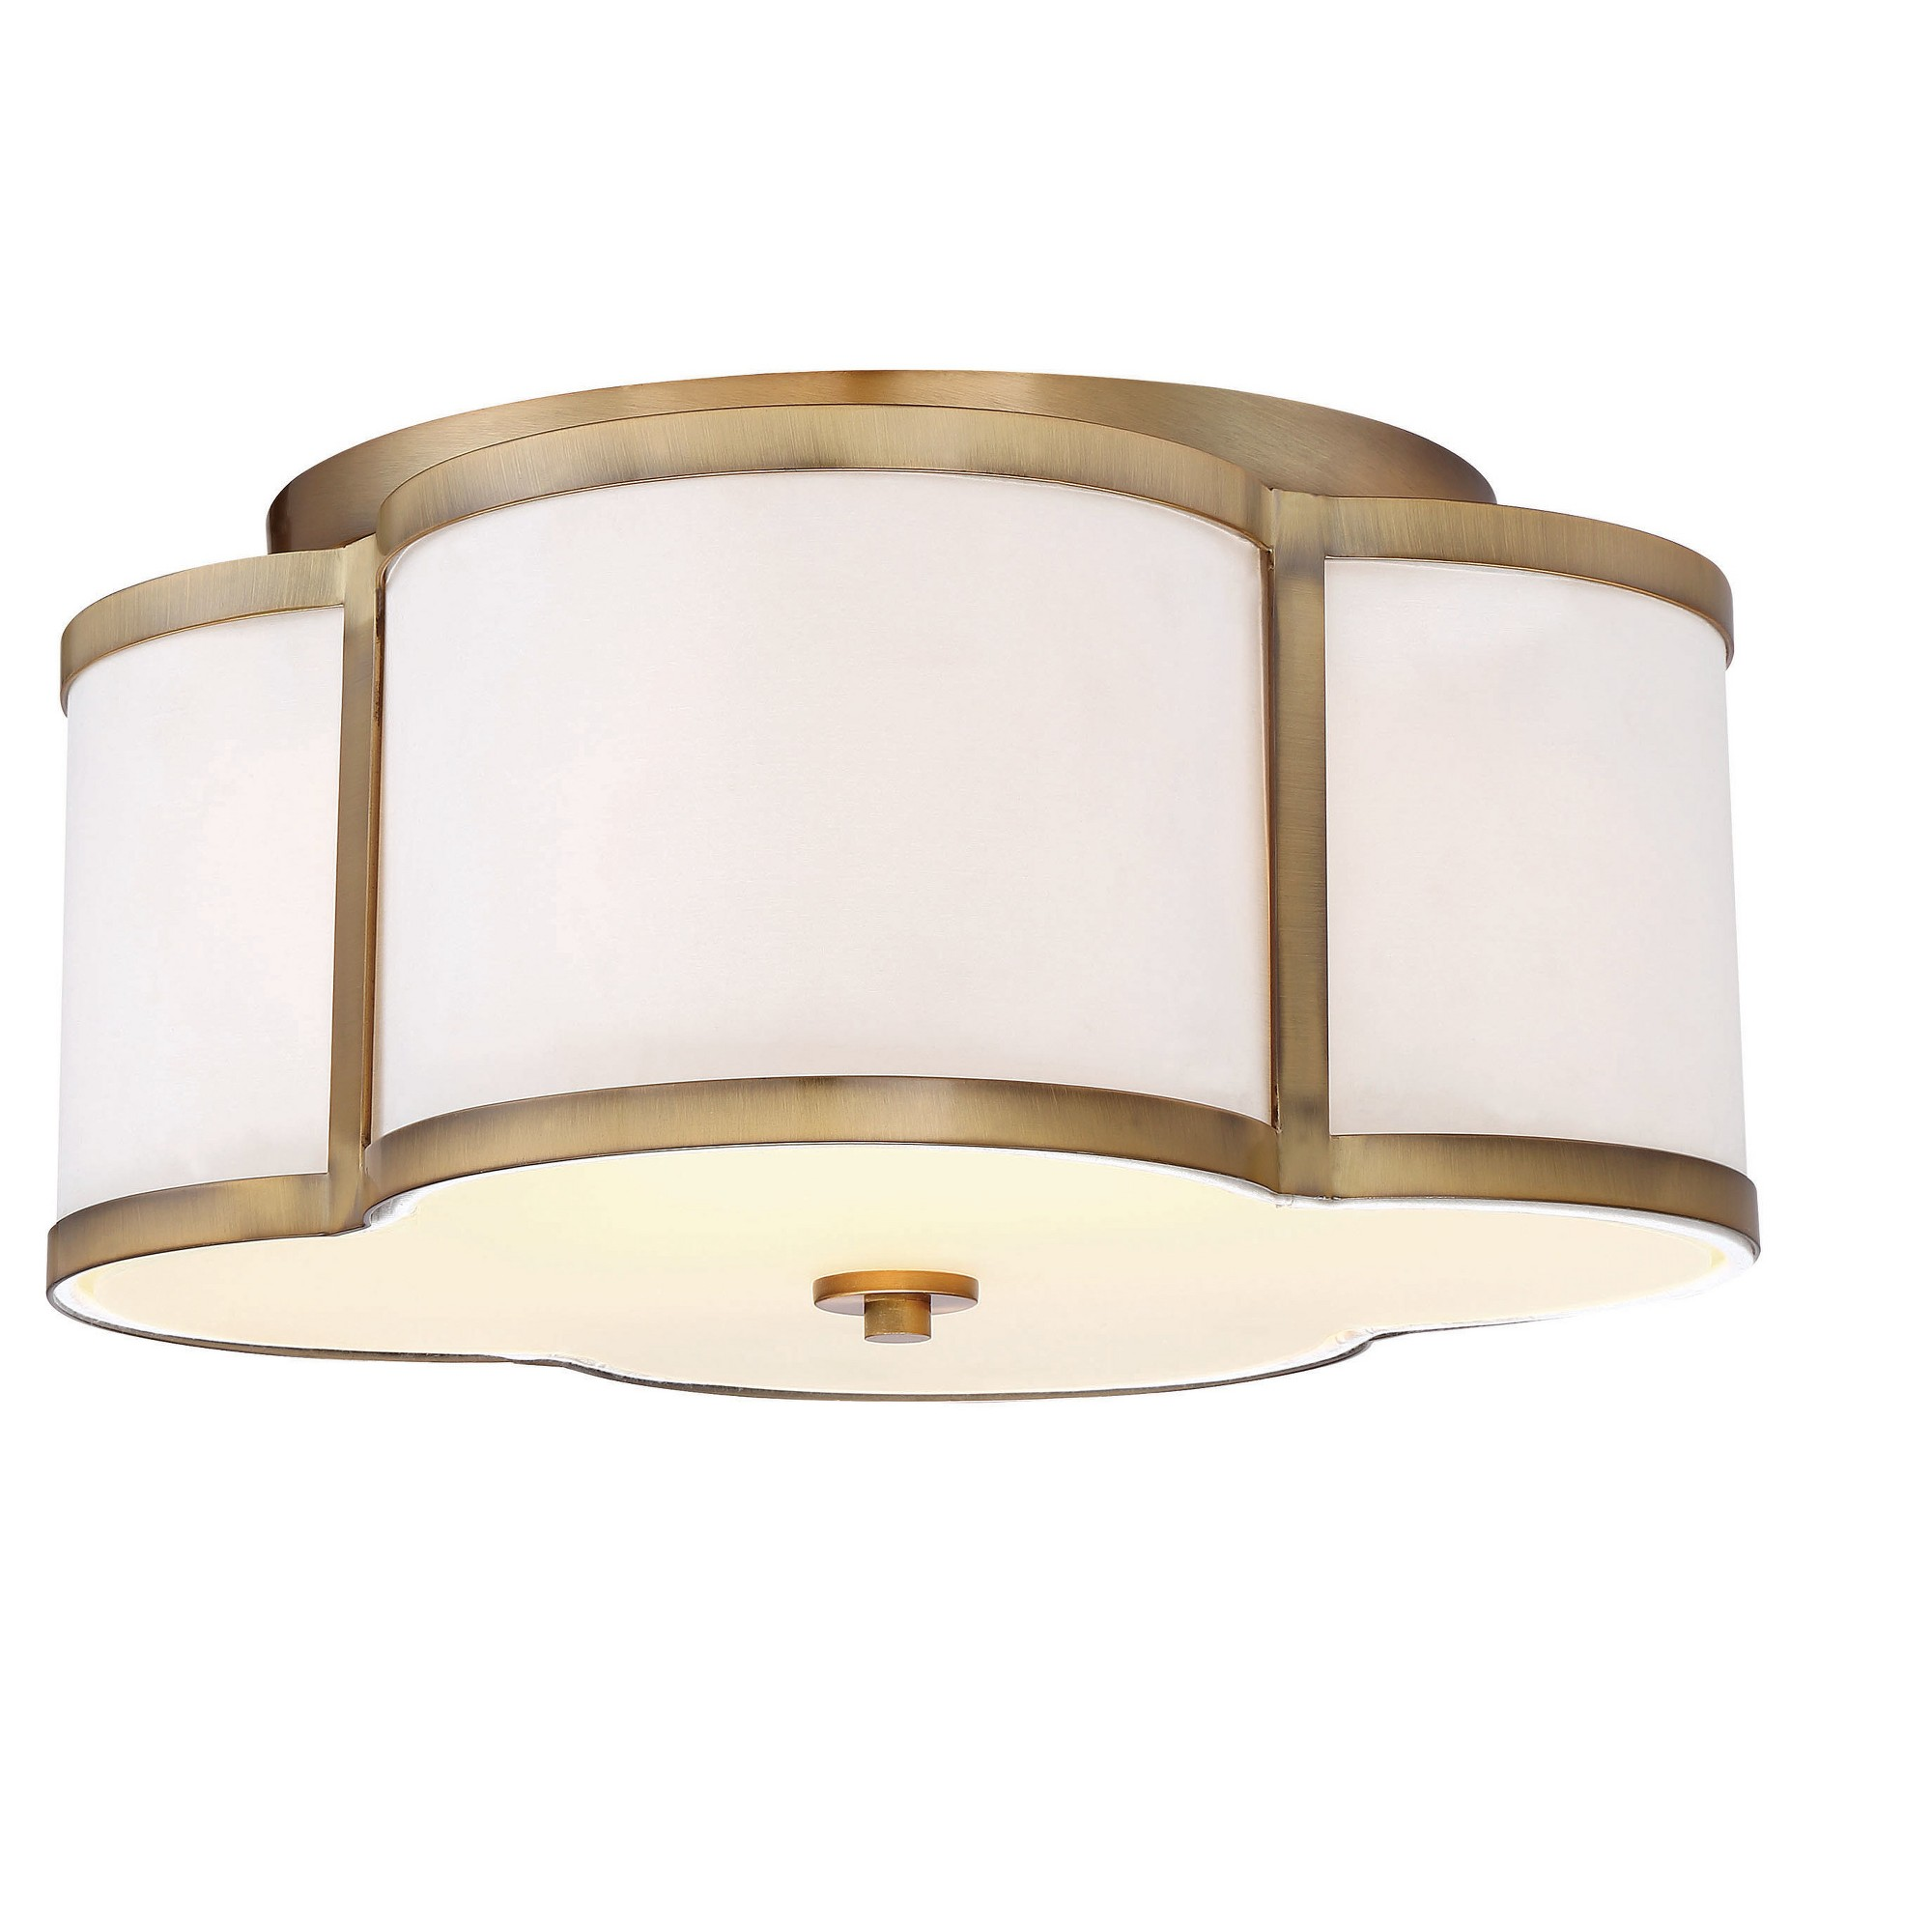 Semi Flush Mount Ceiling Lights With White Fabric Shade Set Of 3 Filament Design Target